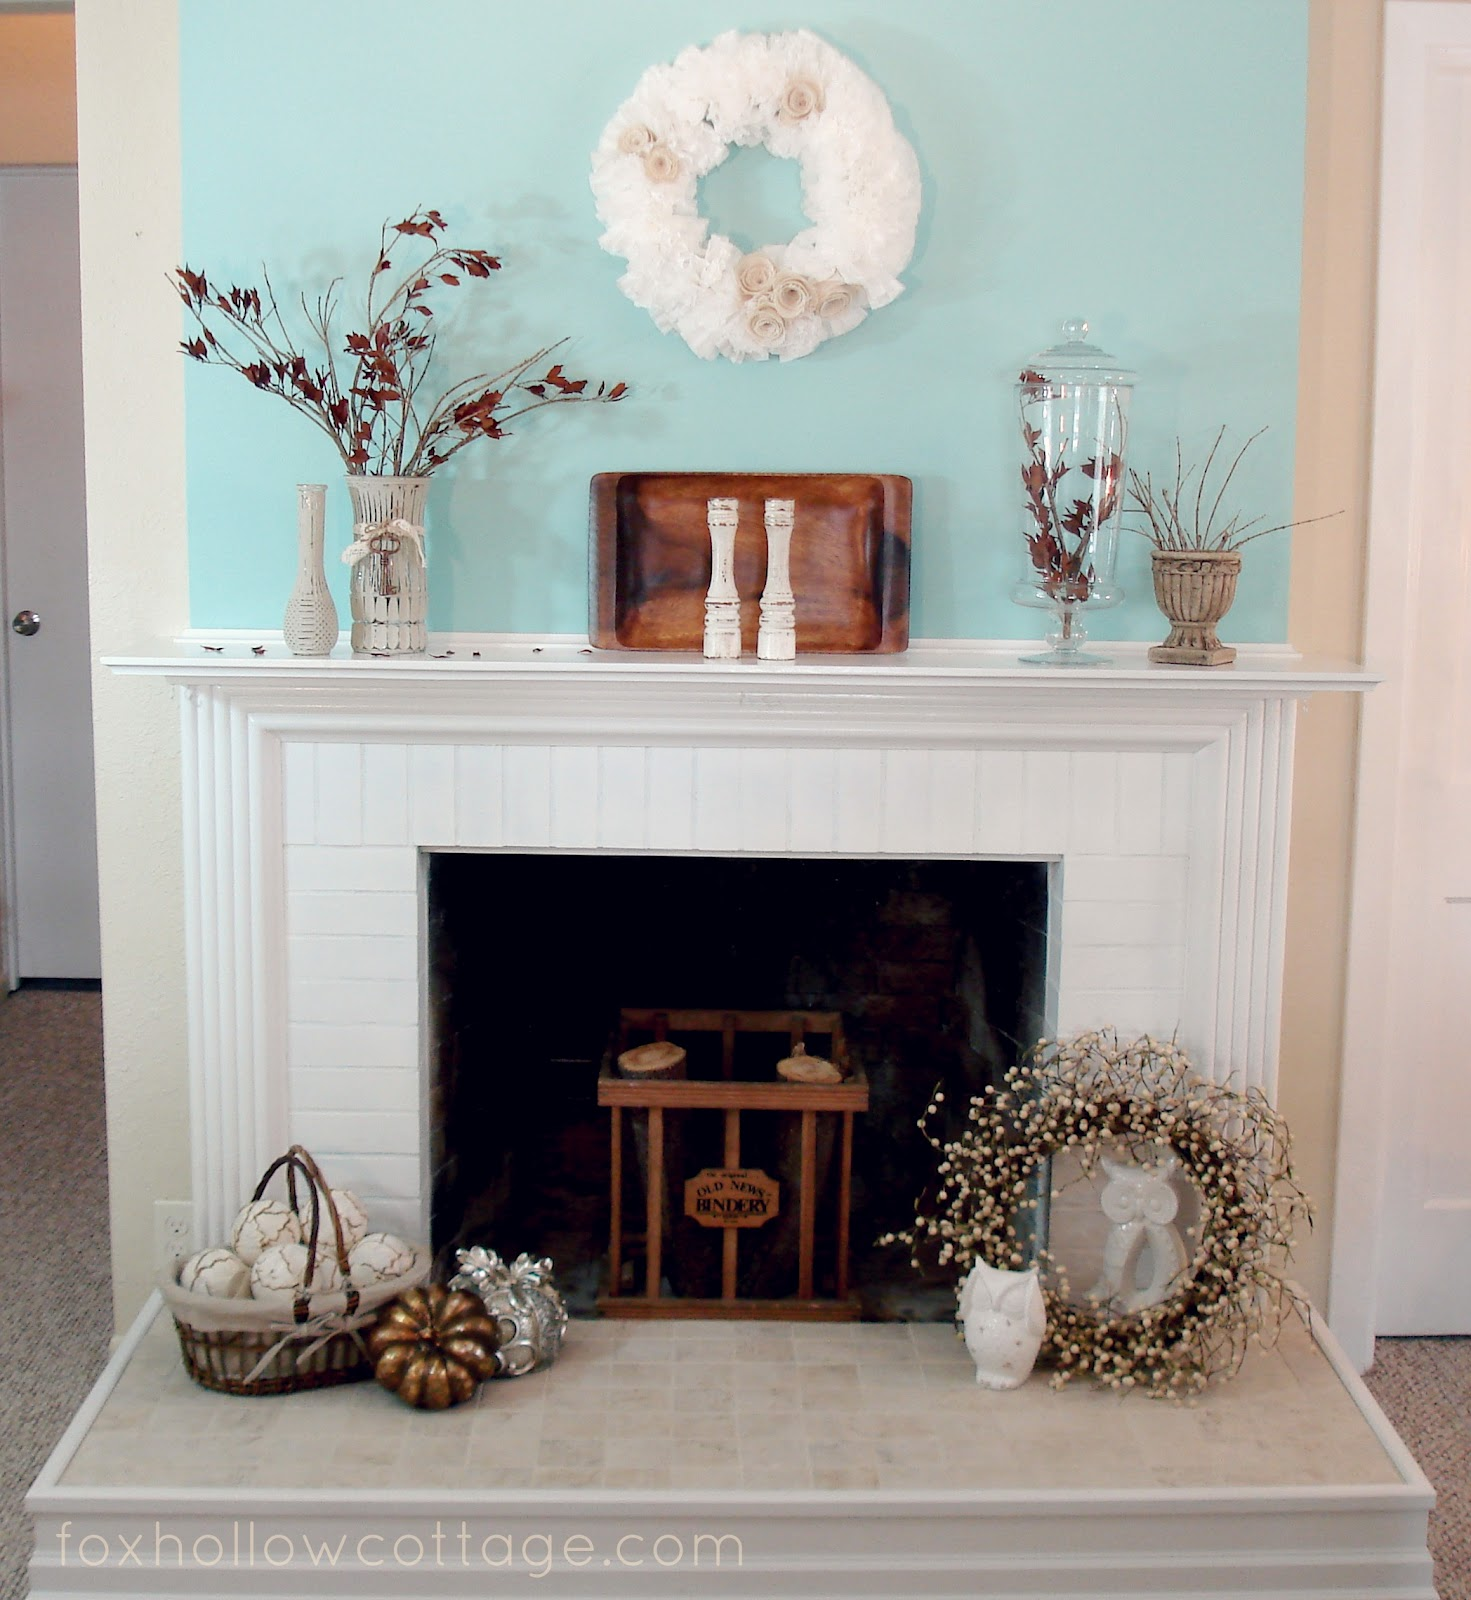 Mantelpiece Ideas My Little Bit Of Fall Mantel Fox Hollow Cottage